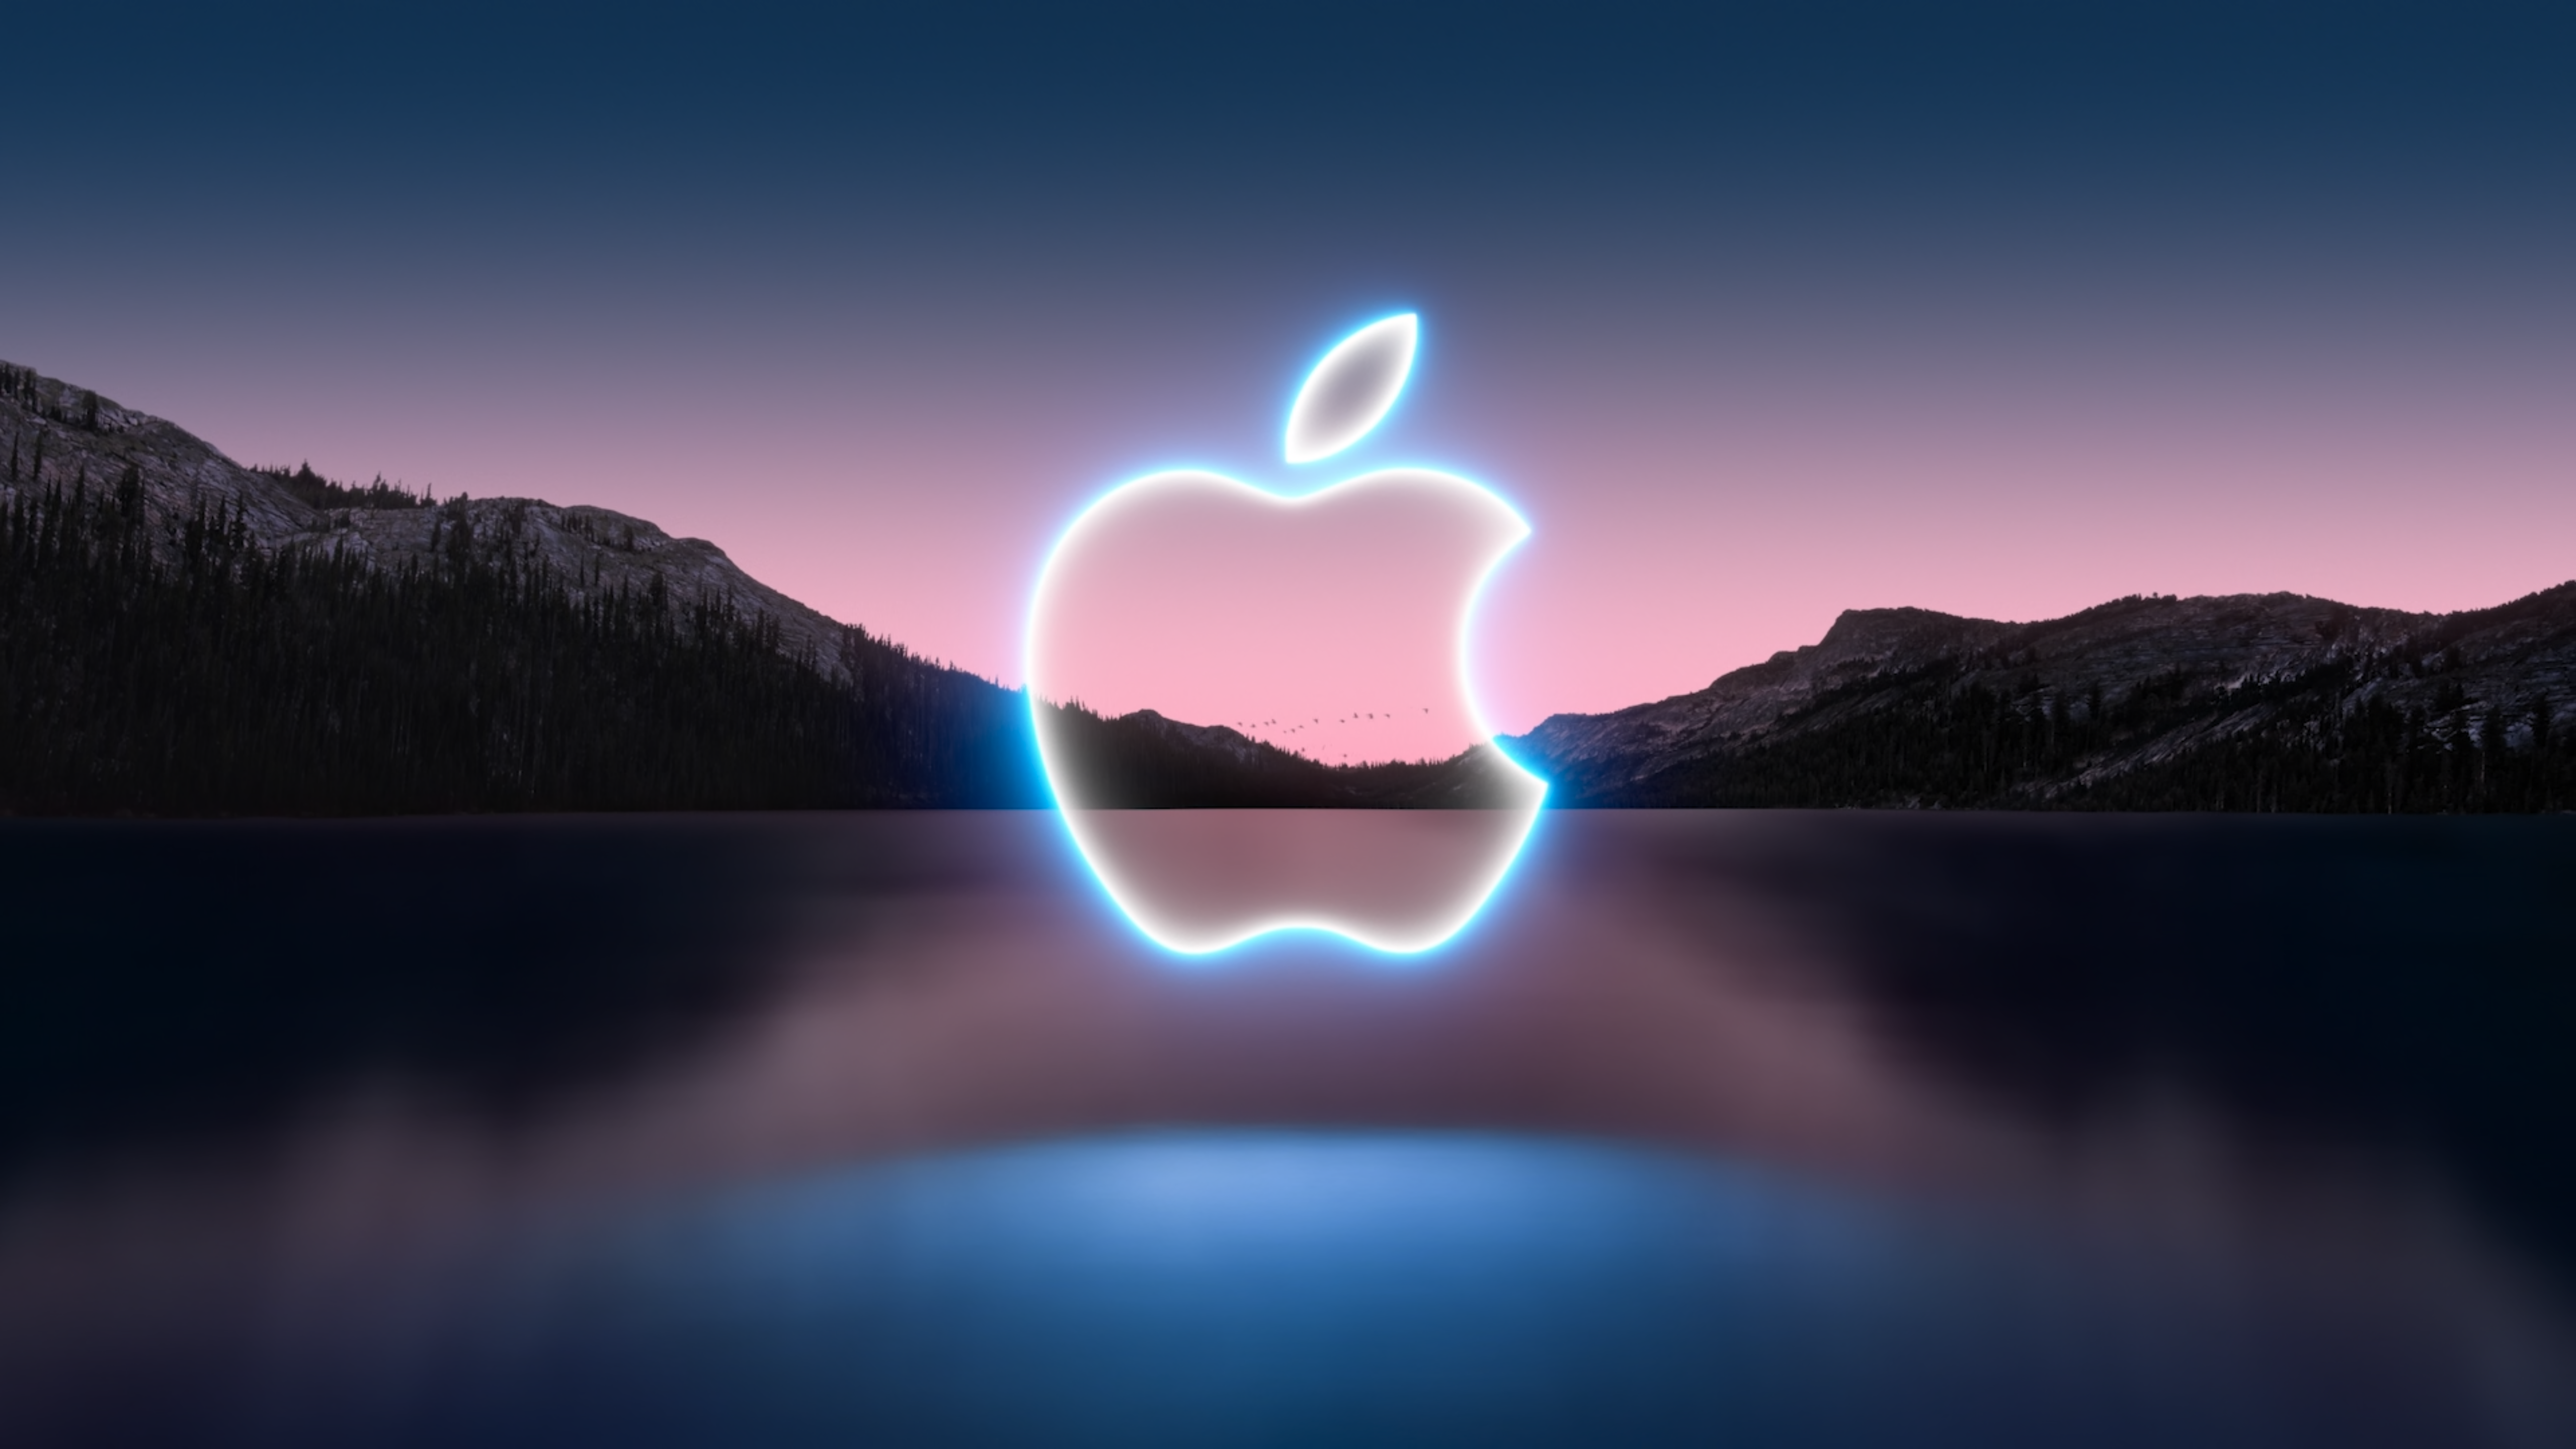 Apple presenting its new iPhones, iPads and Apple Watch